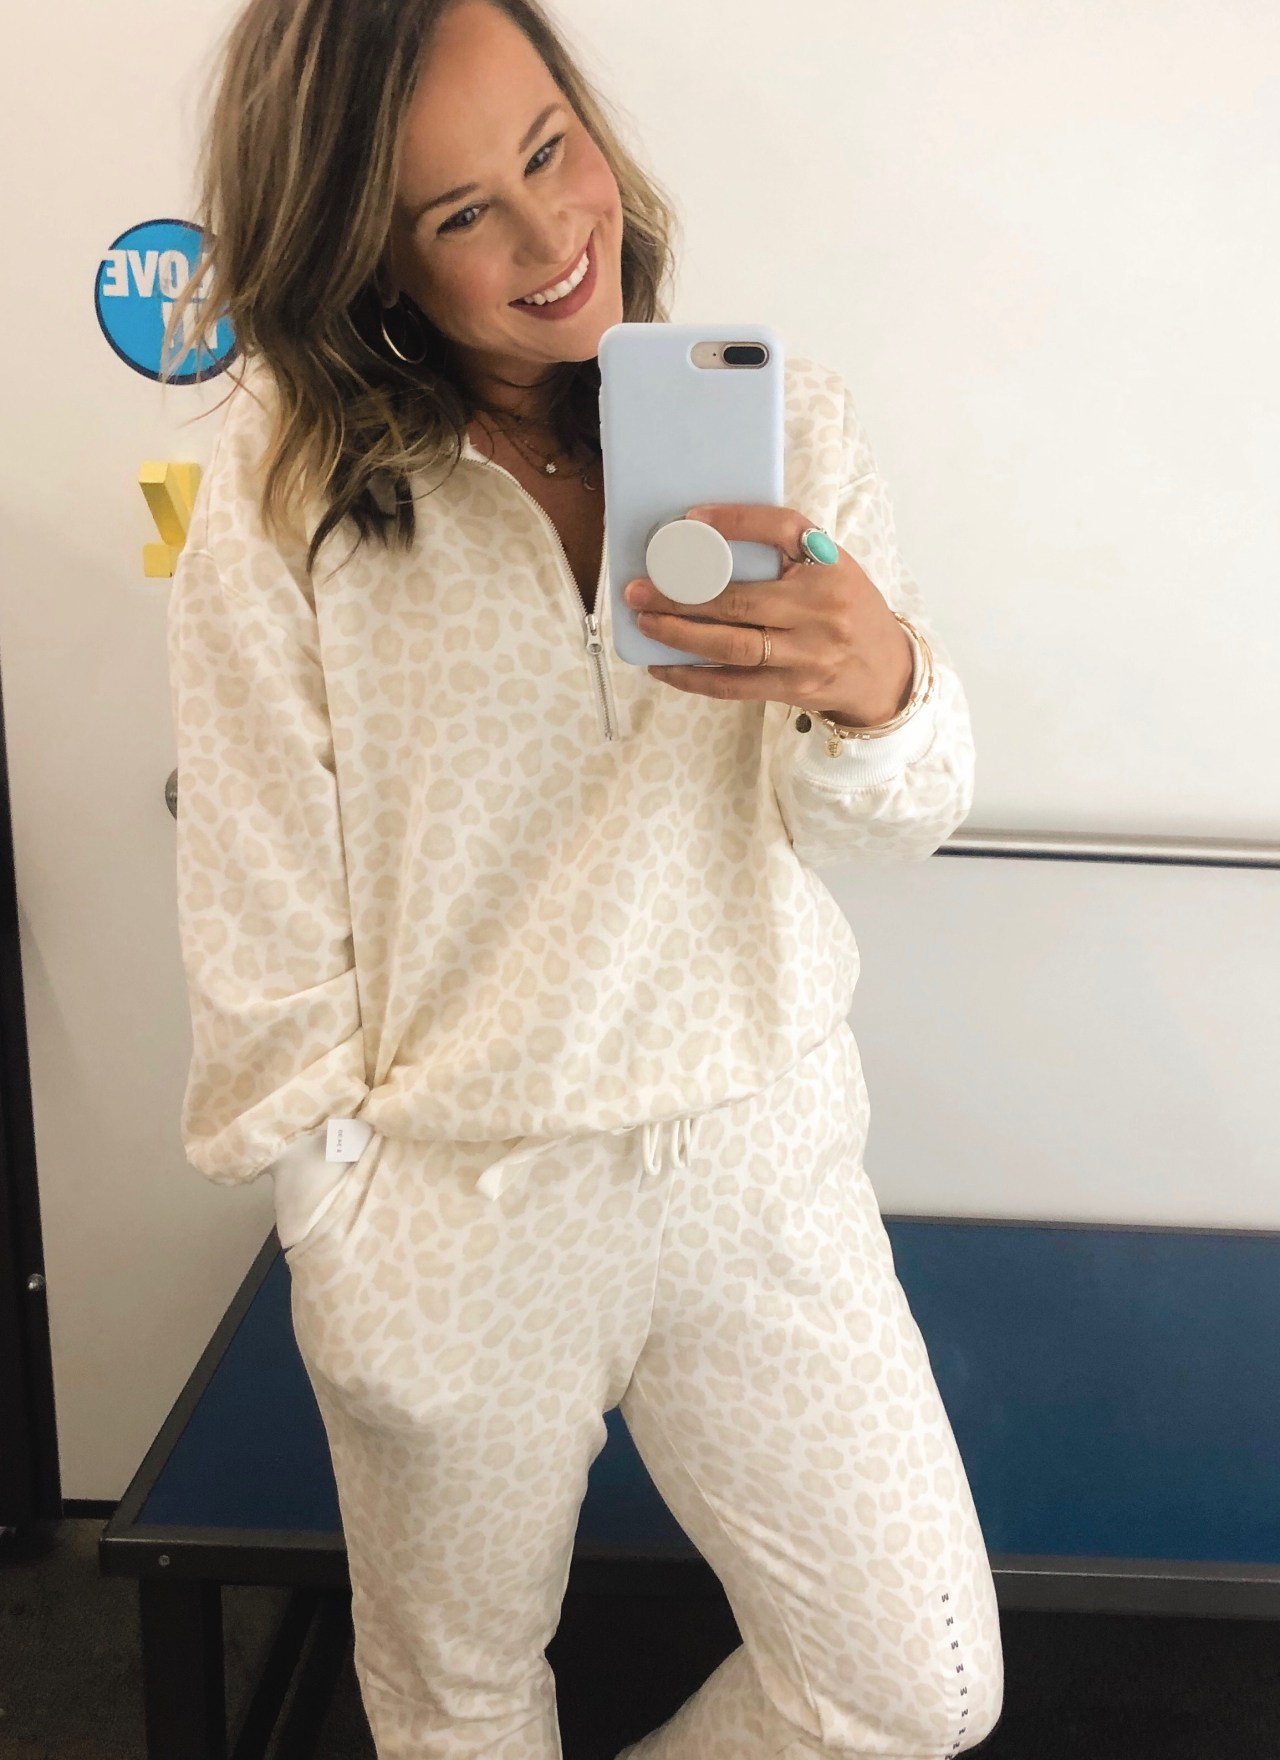 Try On Tuesday: Fall Style at Old Navy